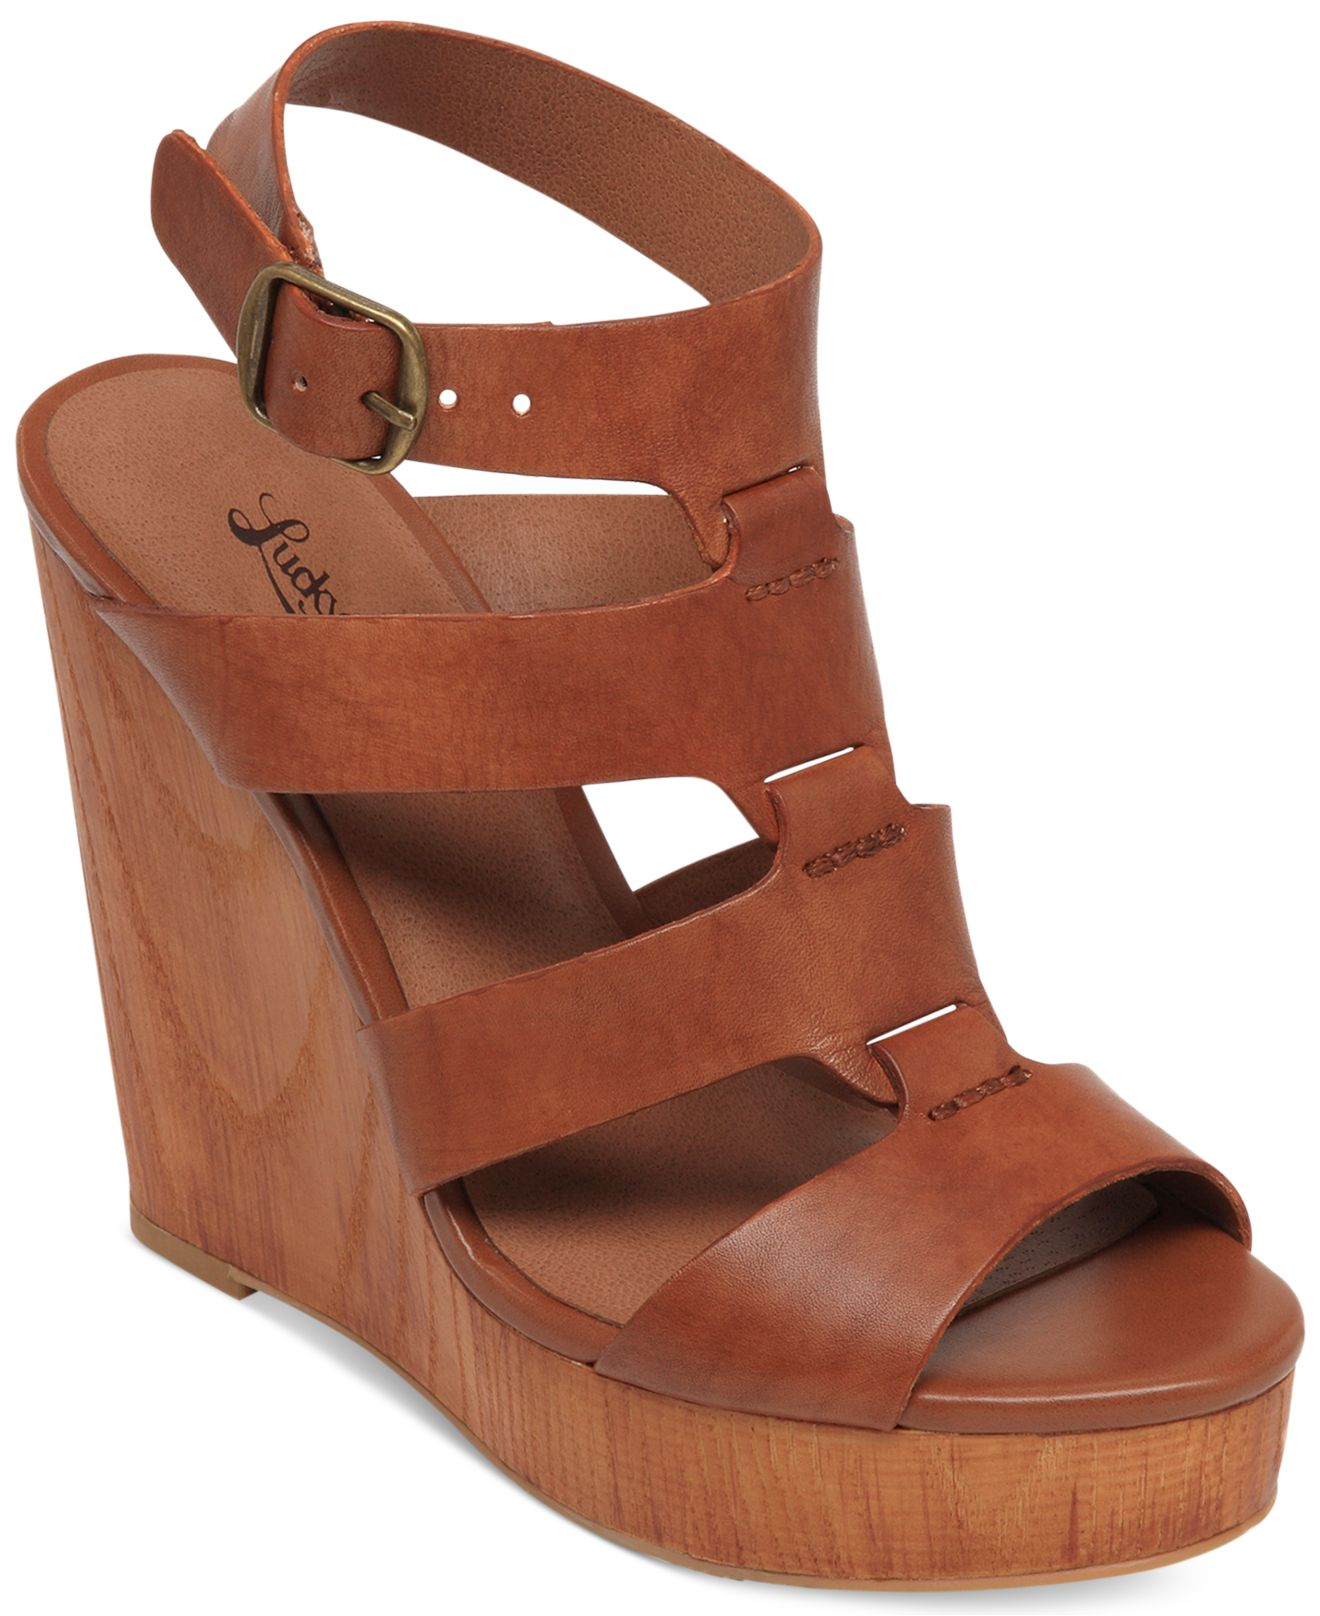 c366ad97b50d Lyst - Lucky Brand Women S Roselyn Platform Wedge Sandals in Brown